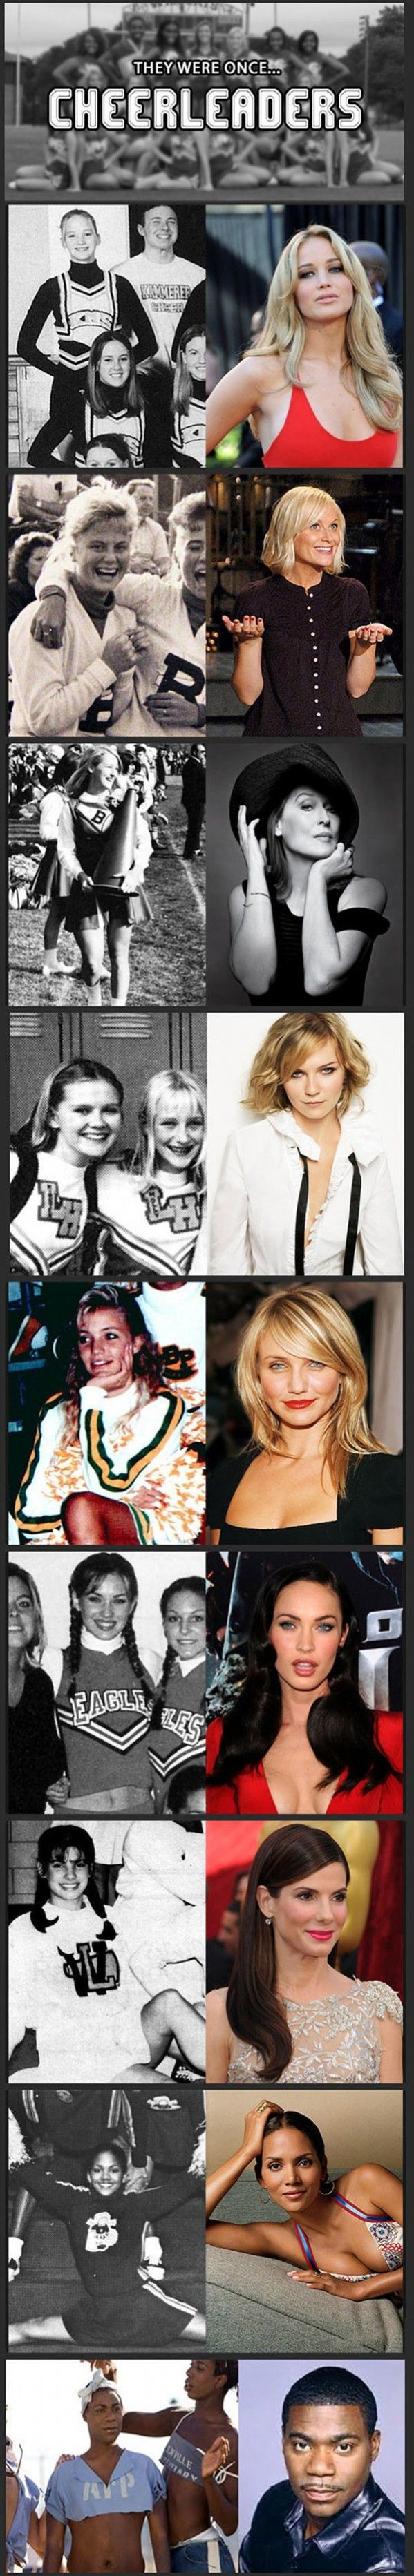 Famous Cheerleaders - SunnyLOL